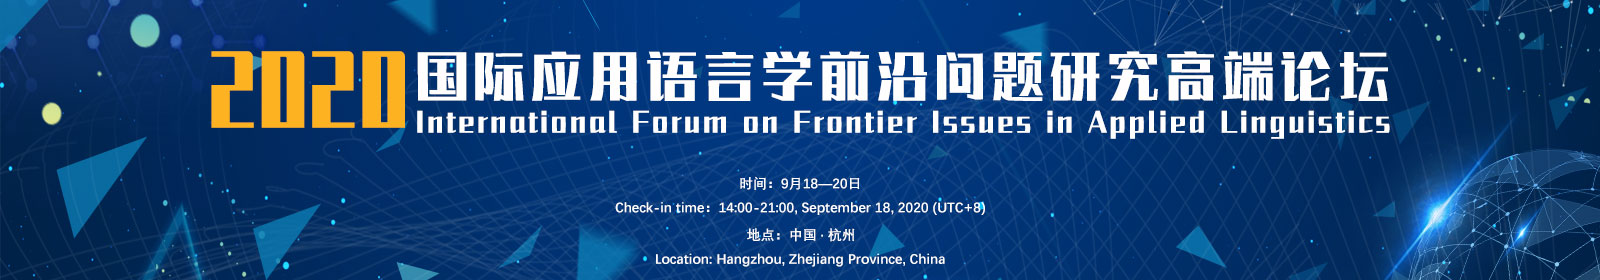 International Forum on Frontier Issues in Applied Linguistics